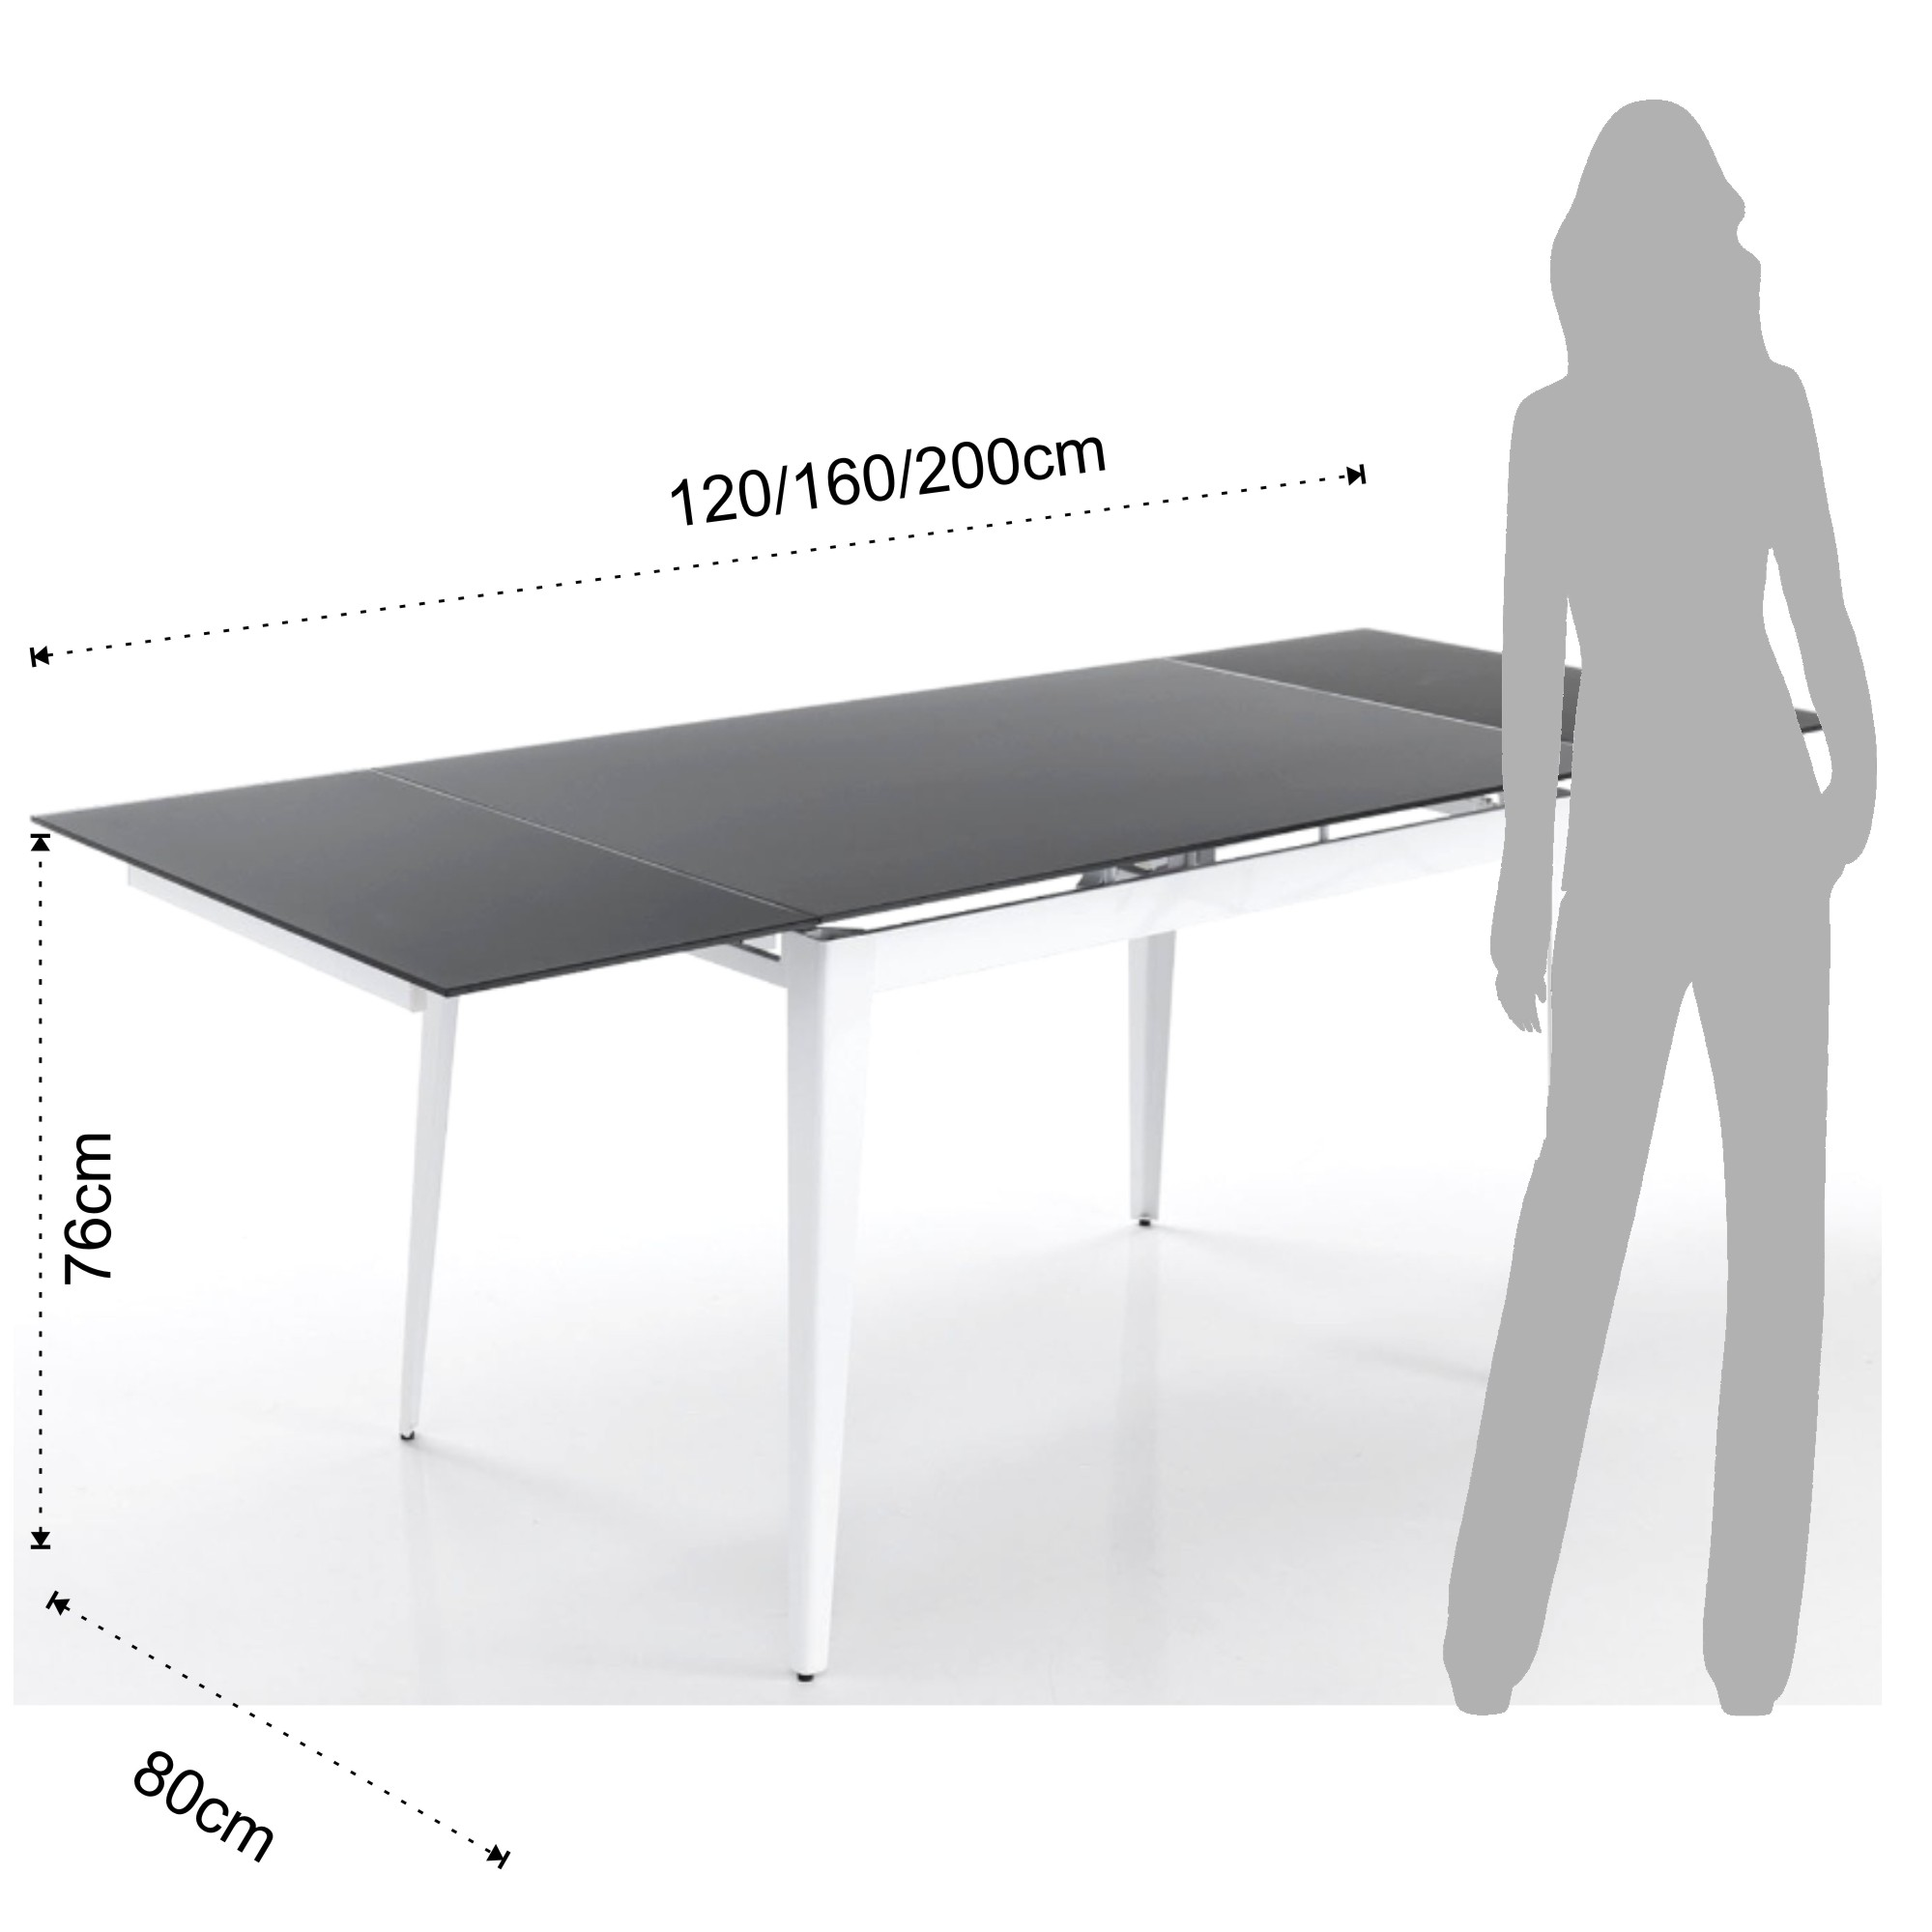 Extensible Extensible Slate Table ShoesOval Extensible Table ShoesOval ShoesOval Table Slate ShoesOval Slate A5jScLq34R